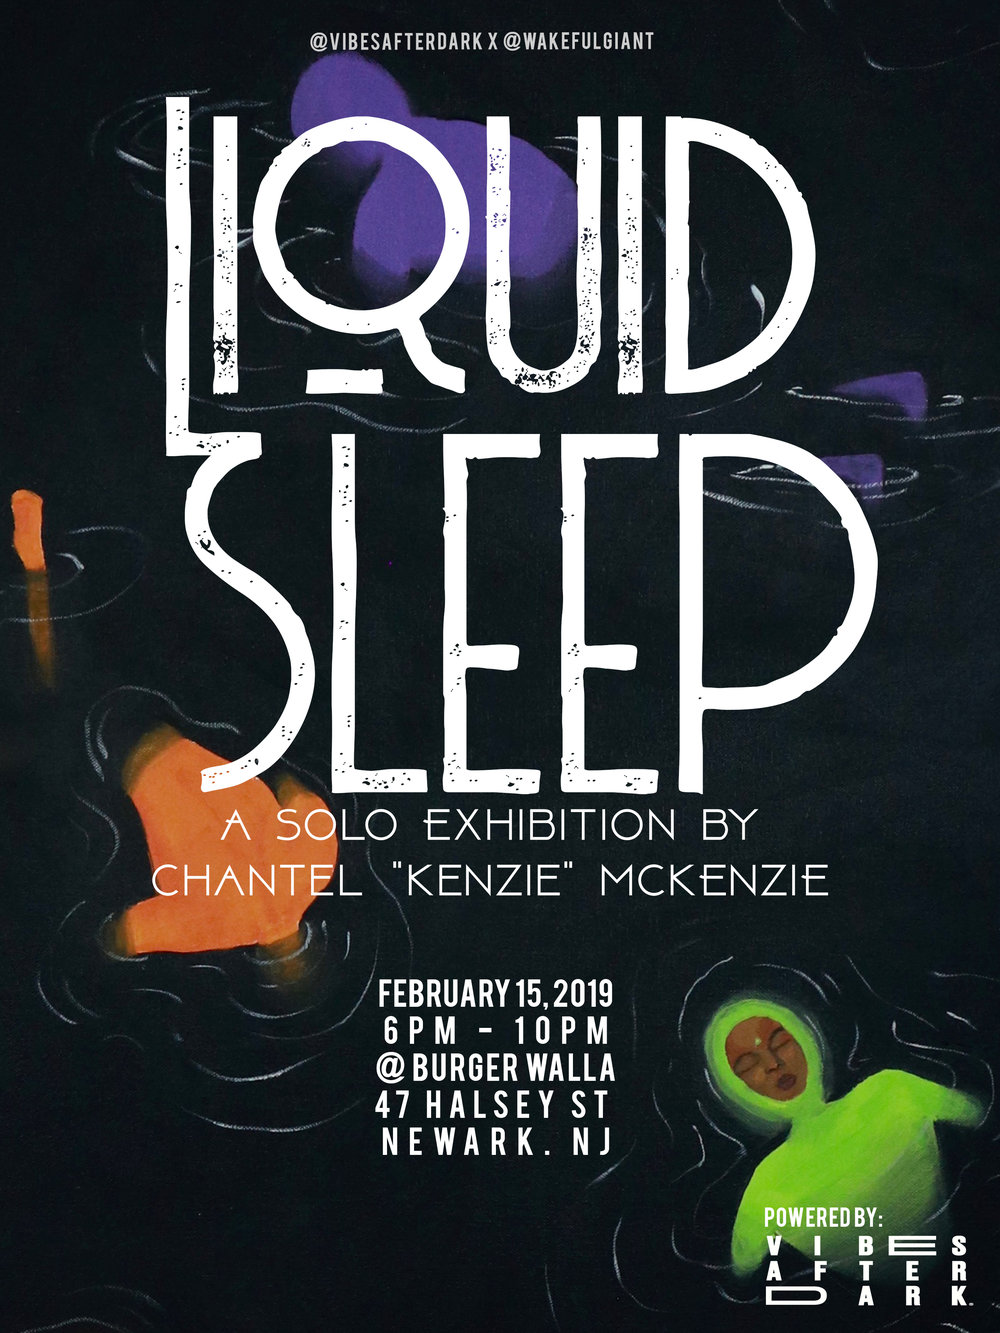 liquid-sleep-show-flyer.jpg